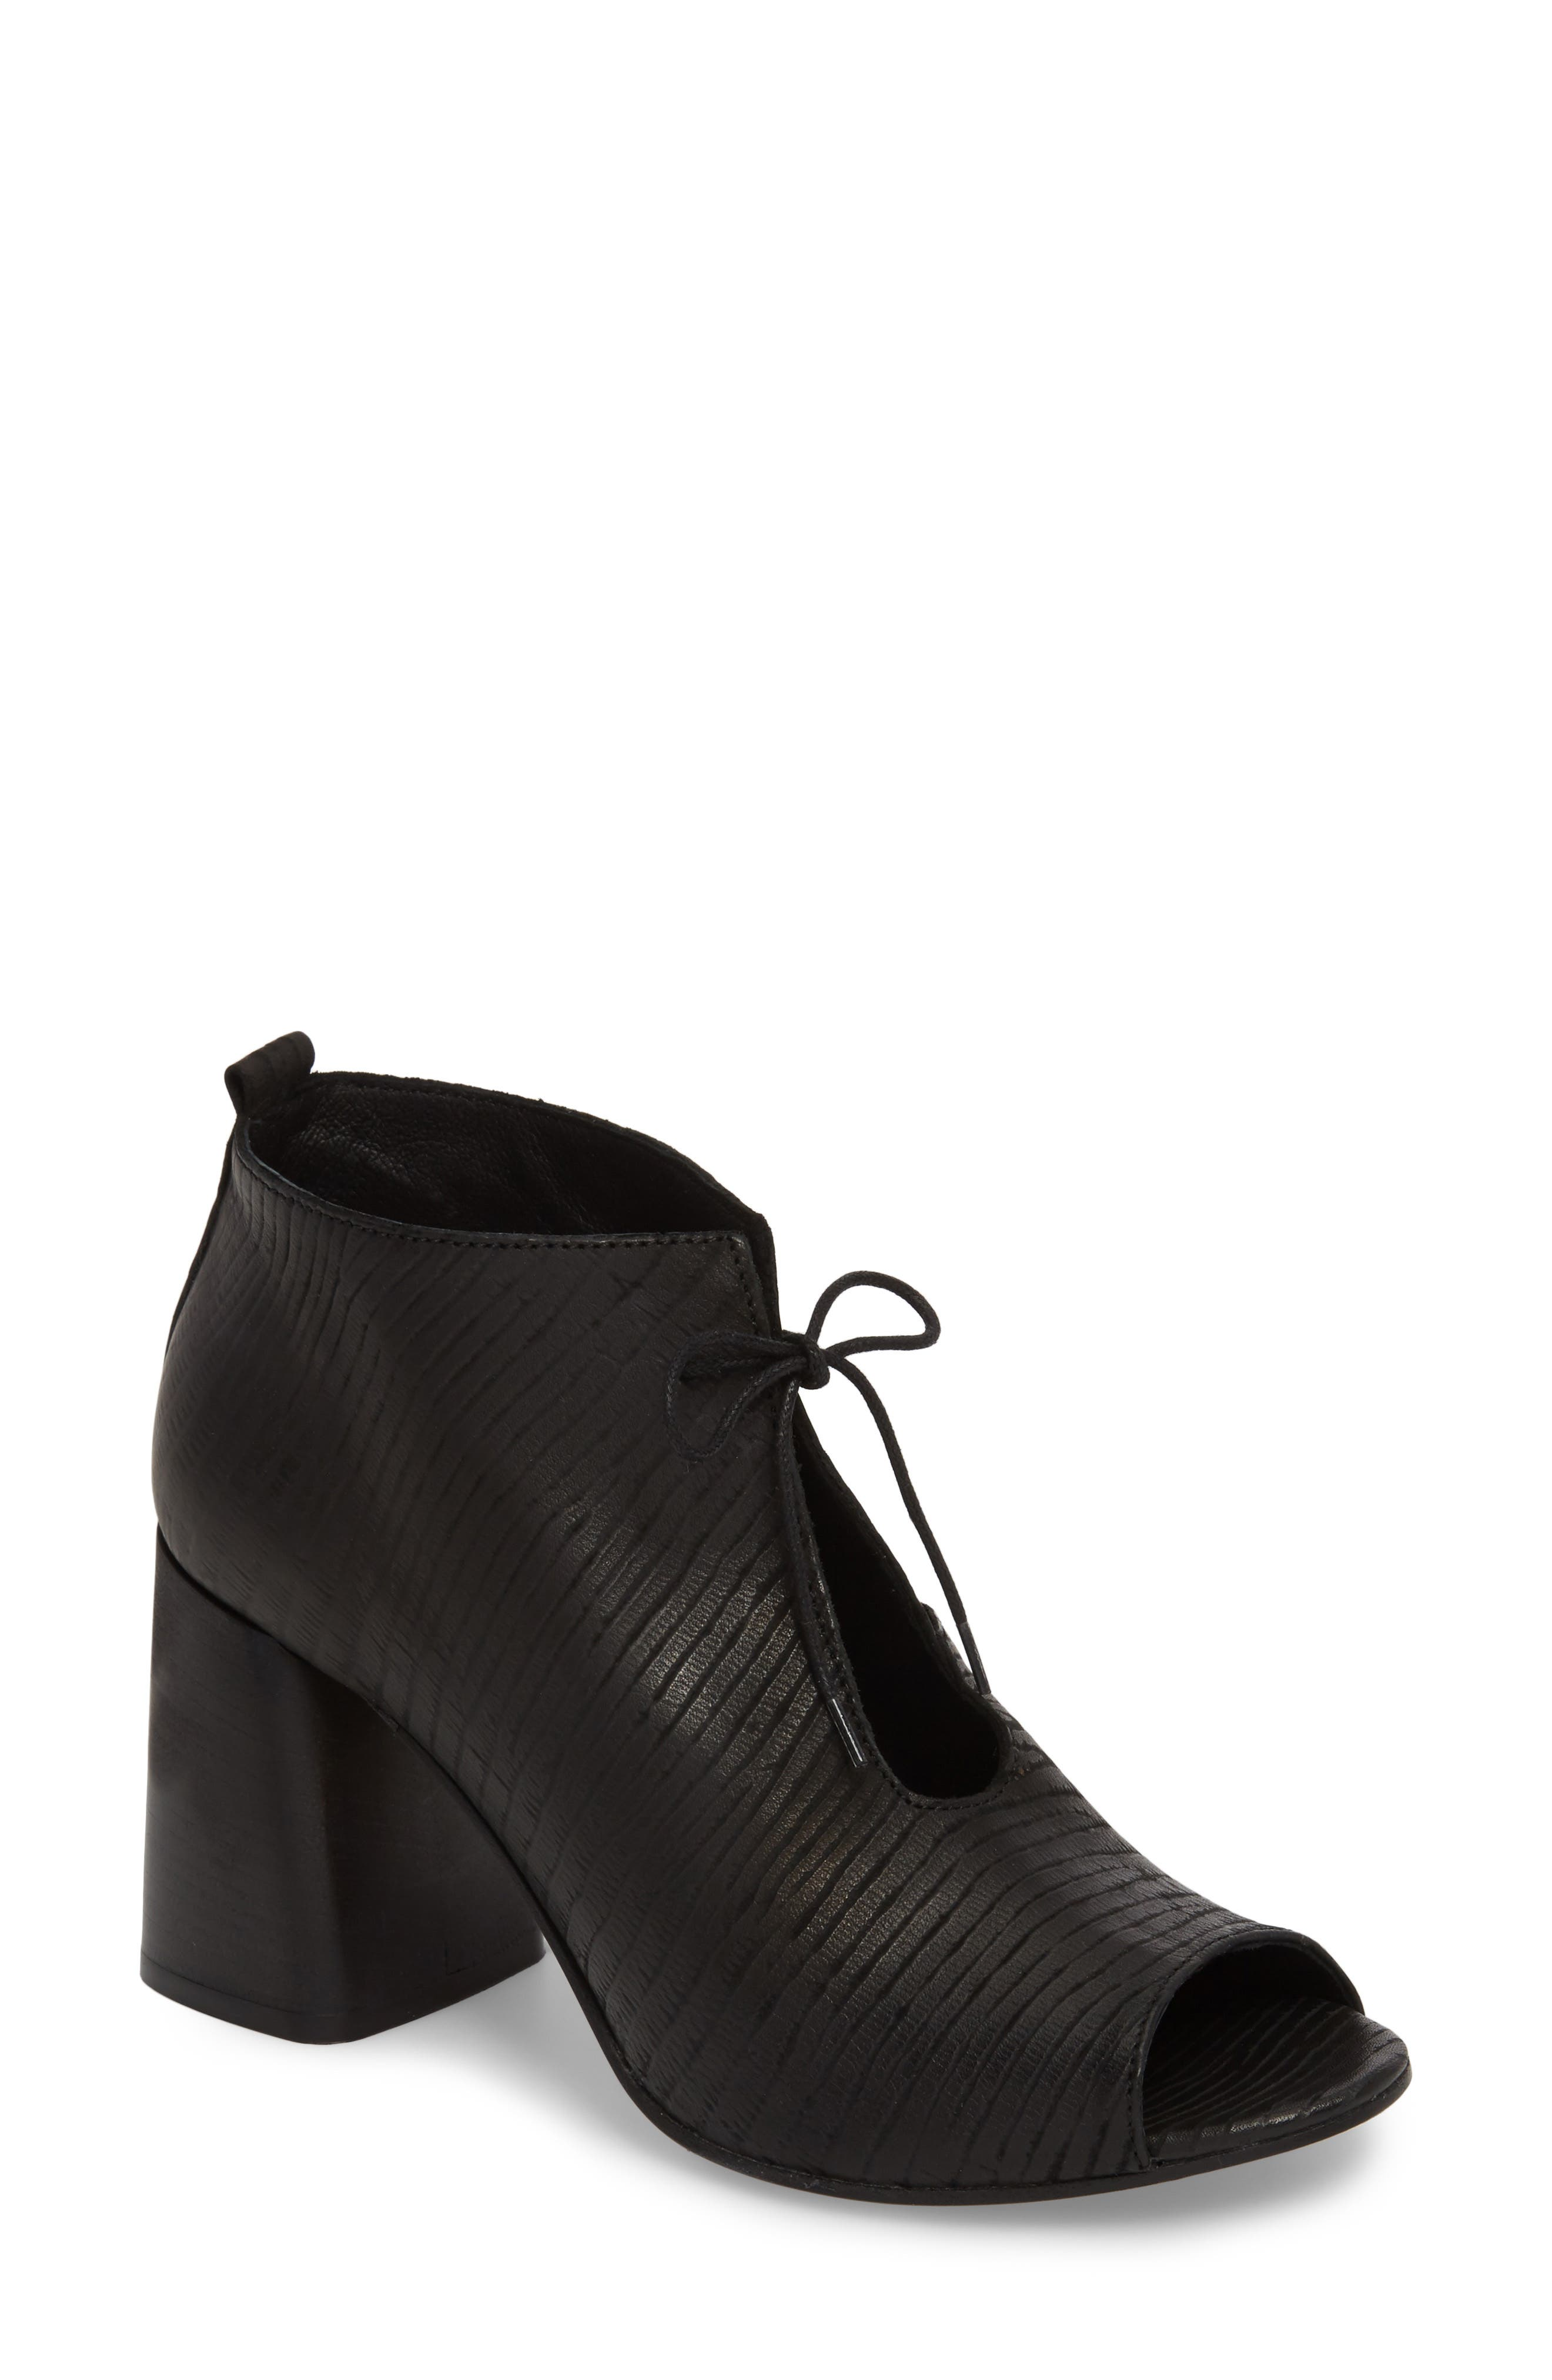 Lacey1 Bootie,                         Main,                         color, BLACK LEATHER